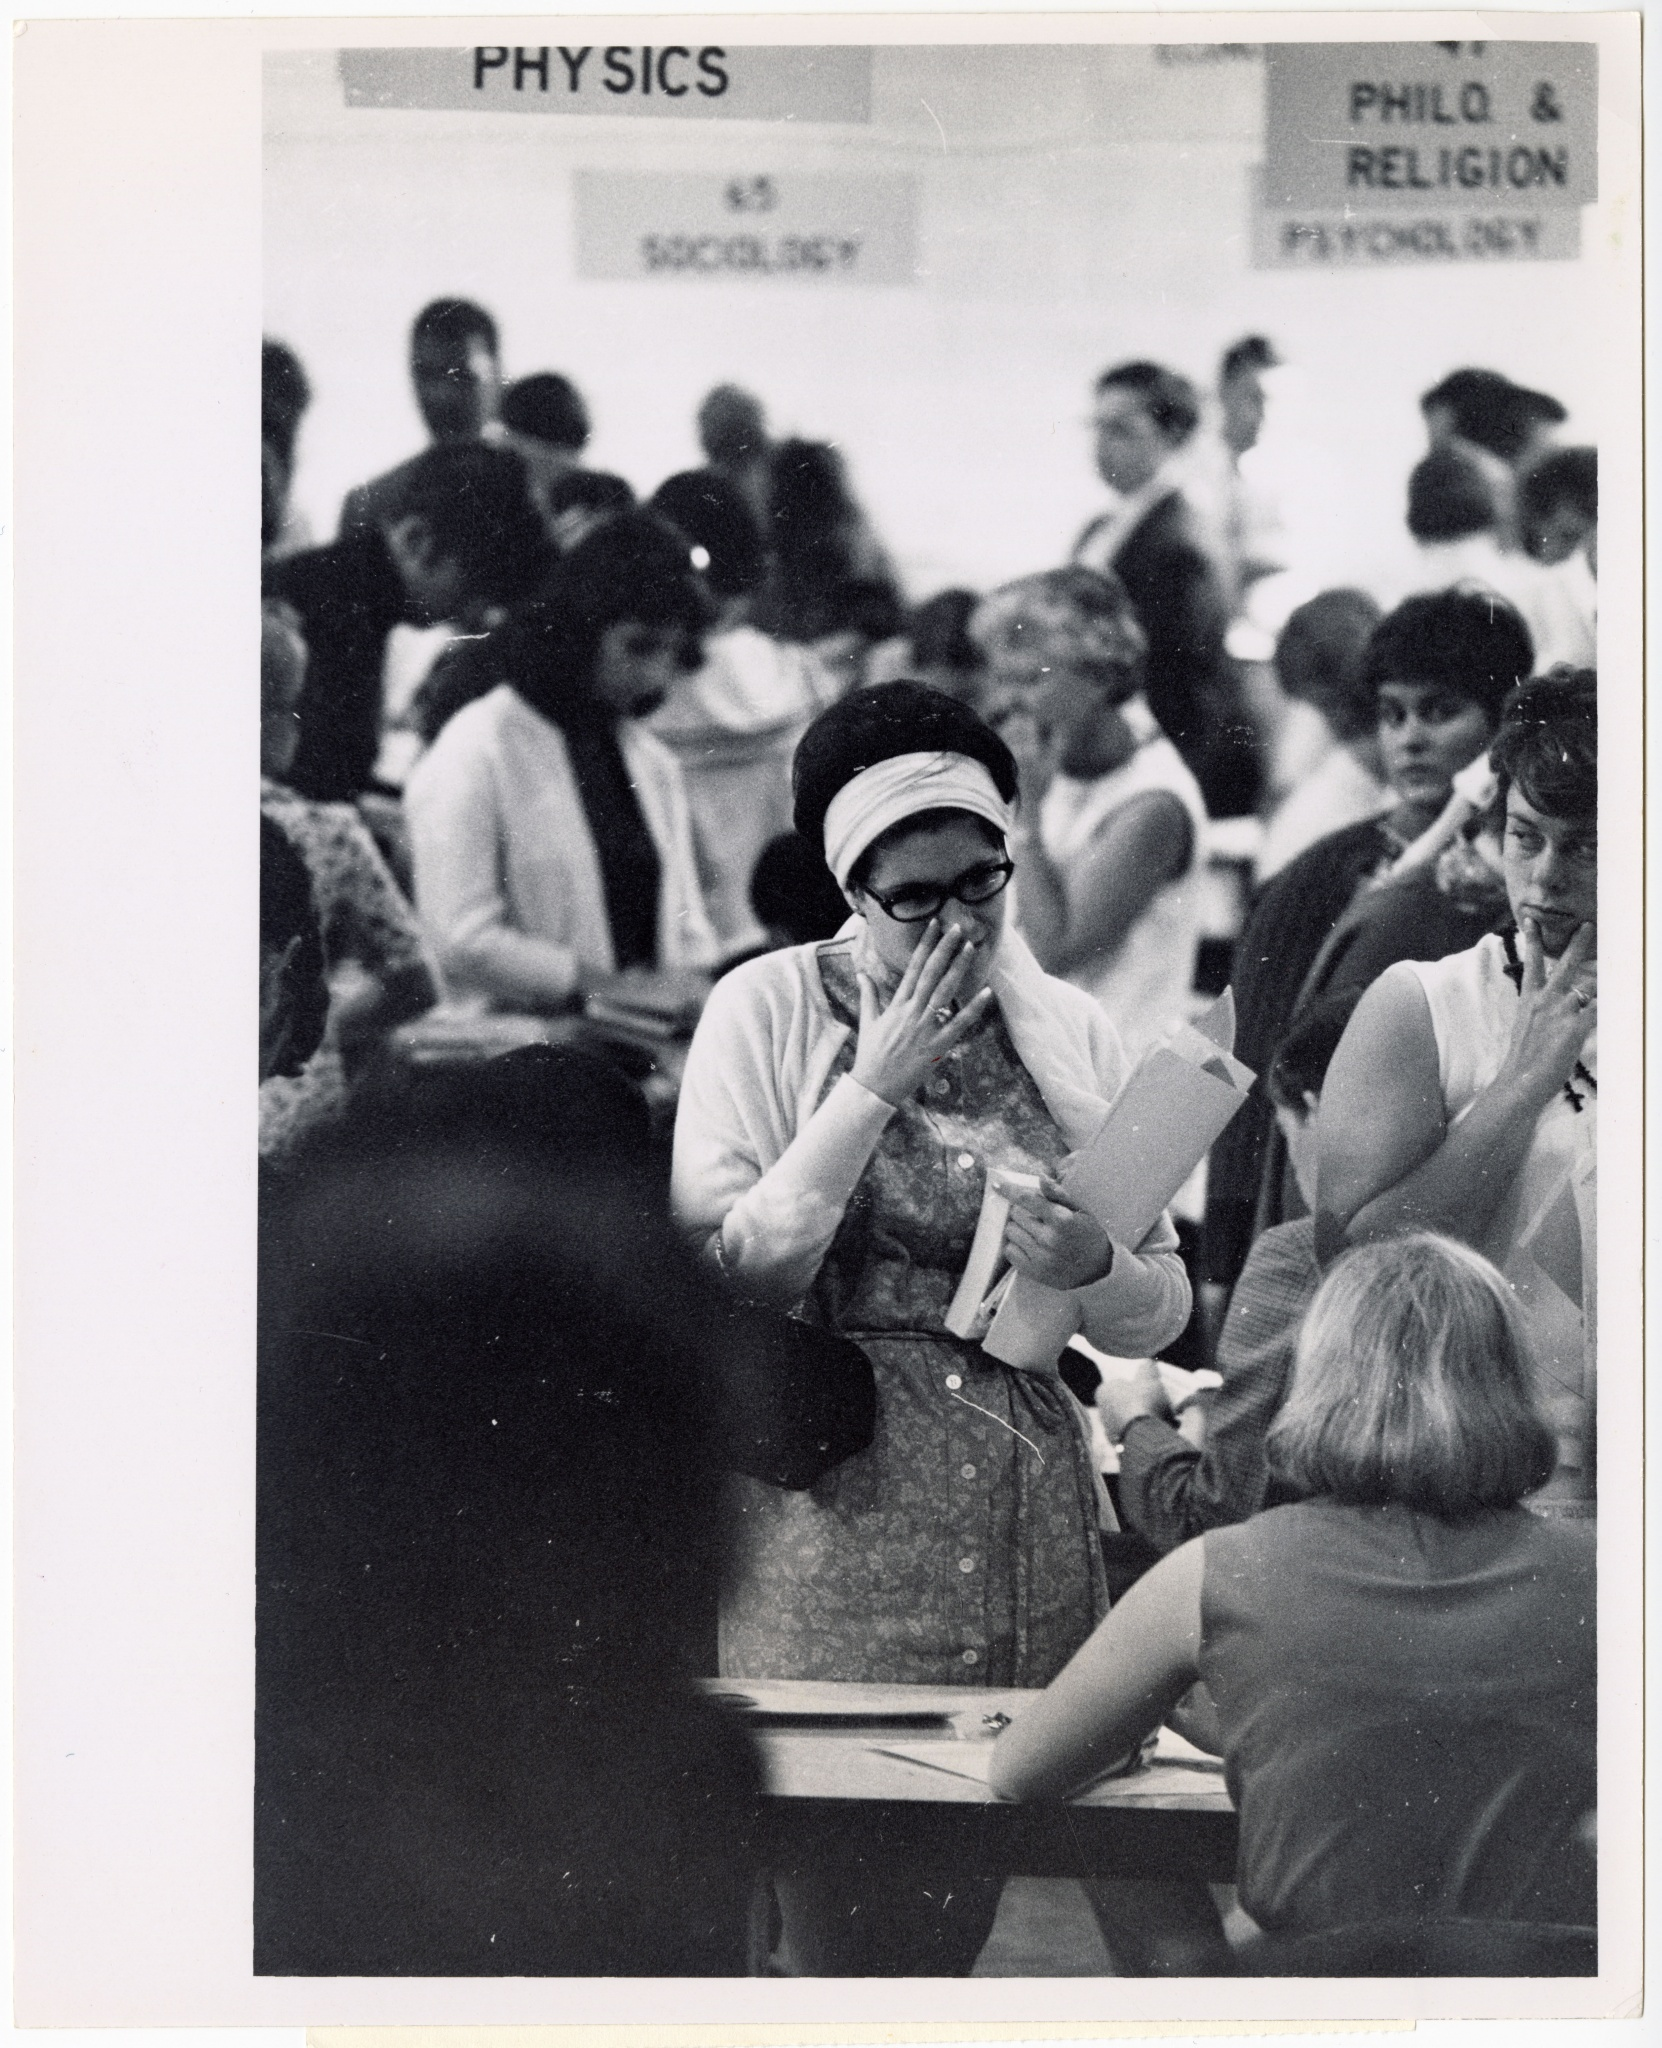 Student Registration in Clendenen Gym, September 1968